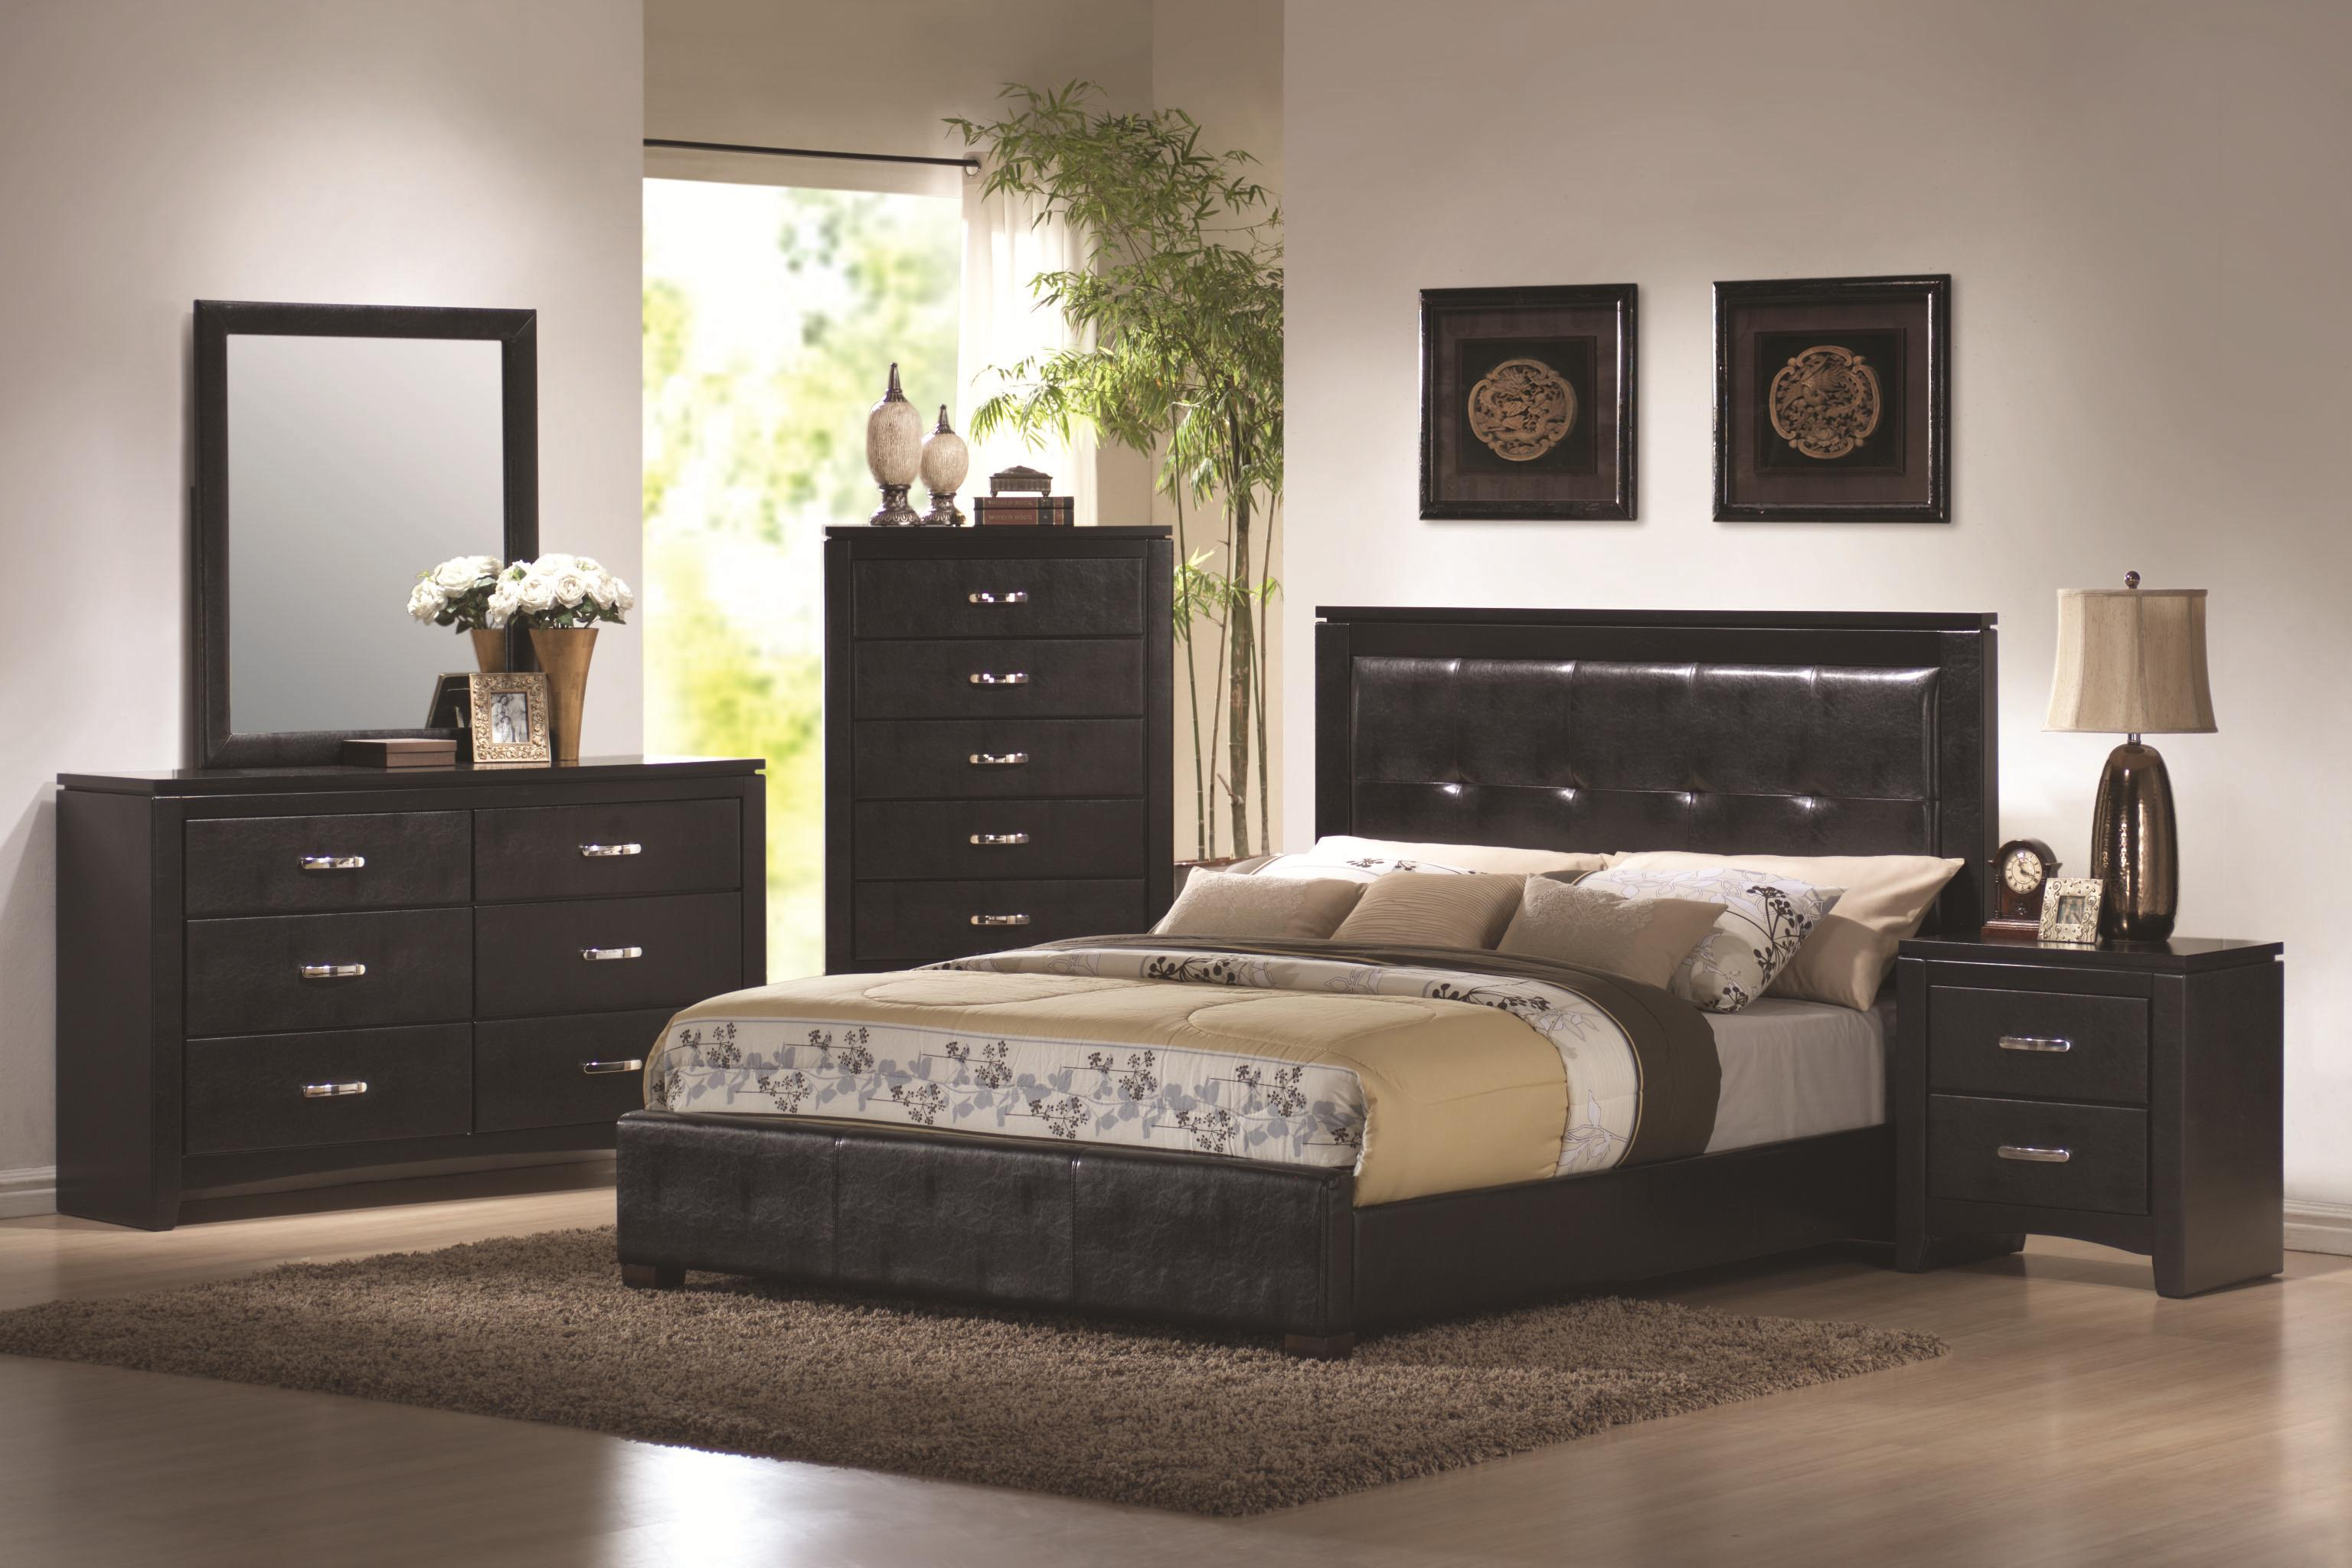 Excellent 5 Piece Bedroom Set Style